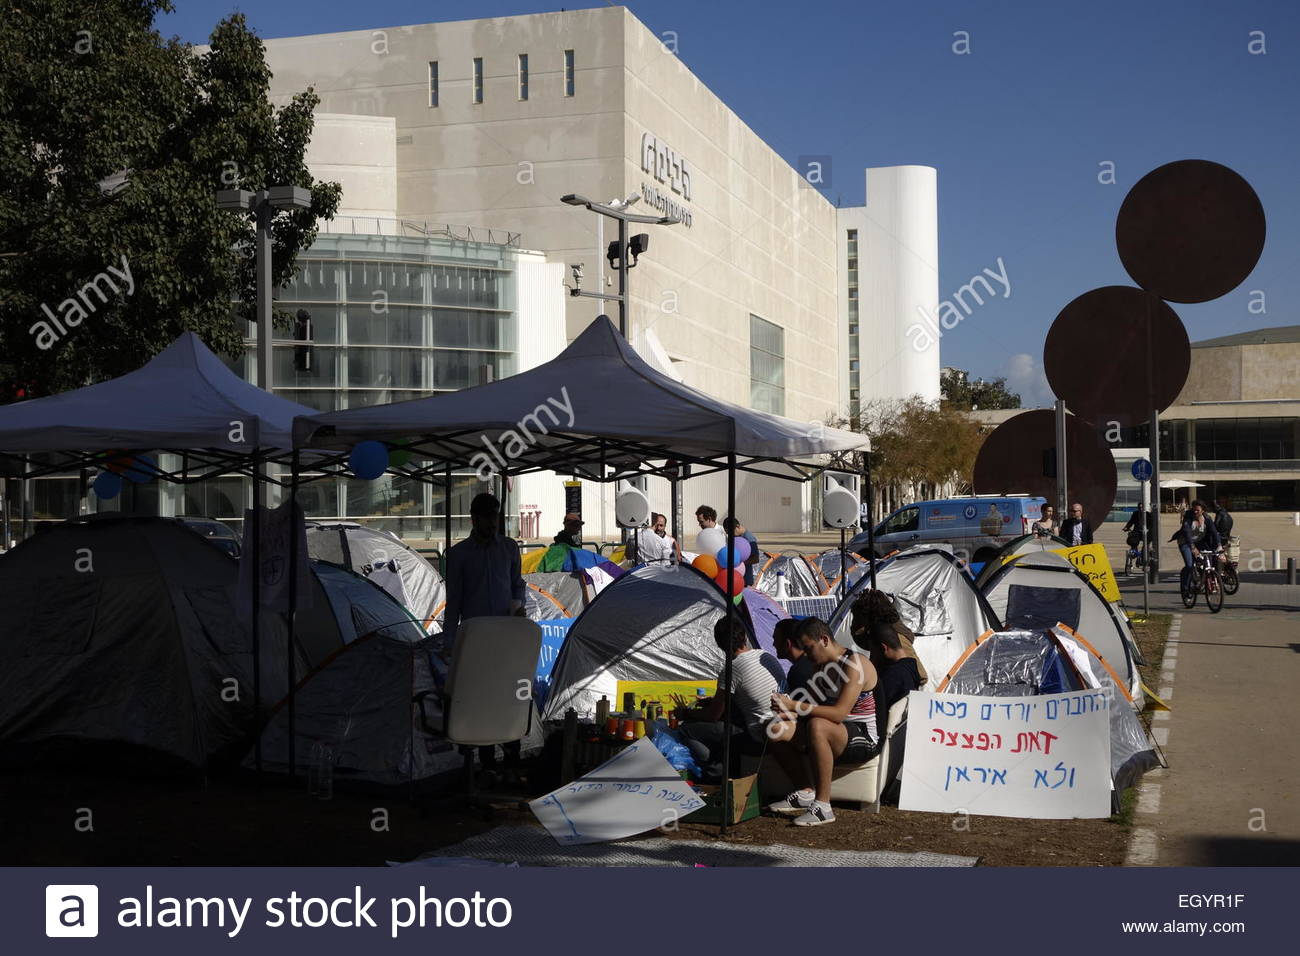 Young Israelis demonstrating in Rothschild boulevard during Cost of Living protest in Tel Aviv Israel. The social - Stock Image